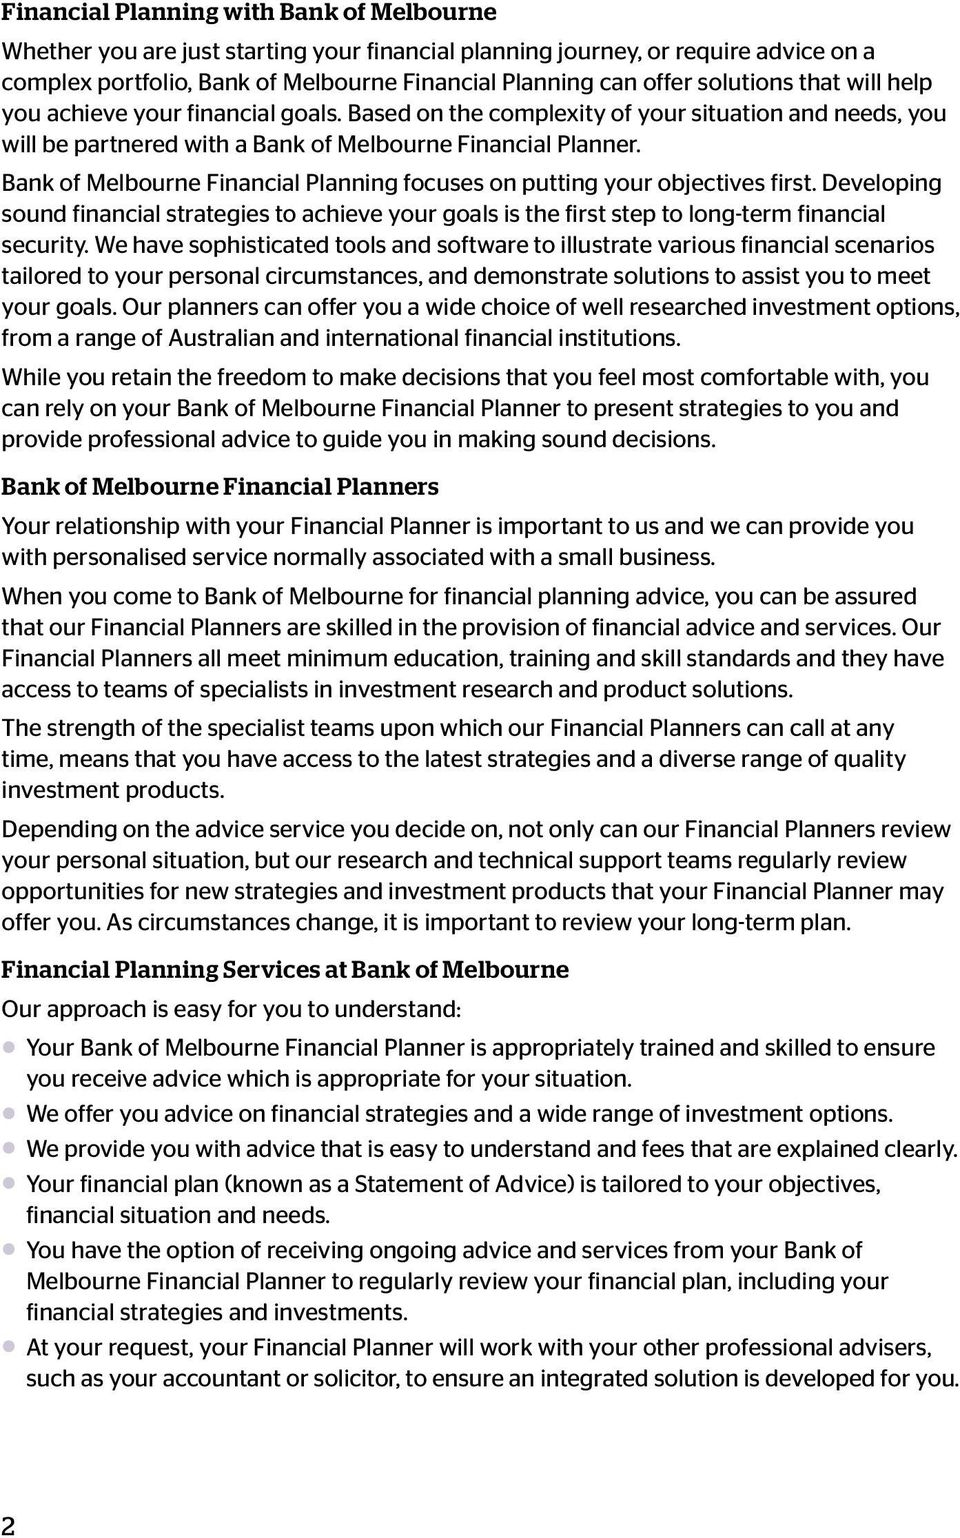 Bank of Melbourne Financial Planning focuses on putting your objectives first. Developing sound financial strategies to achieve your goals is the first step to long-term financial security.